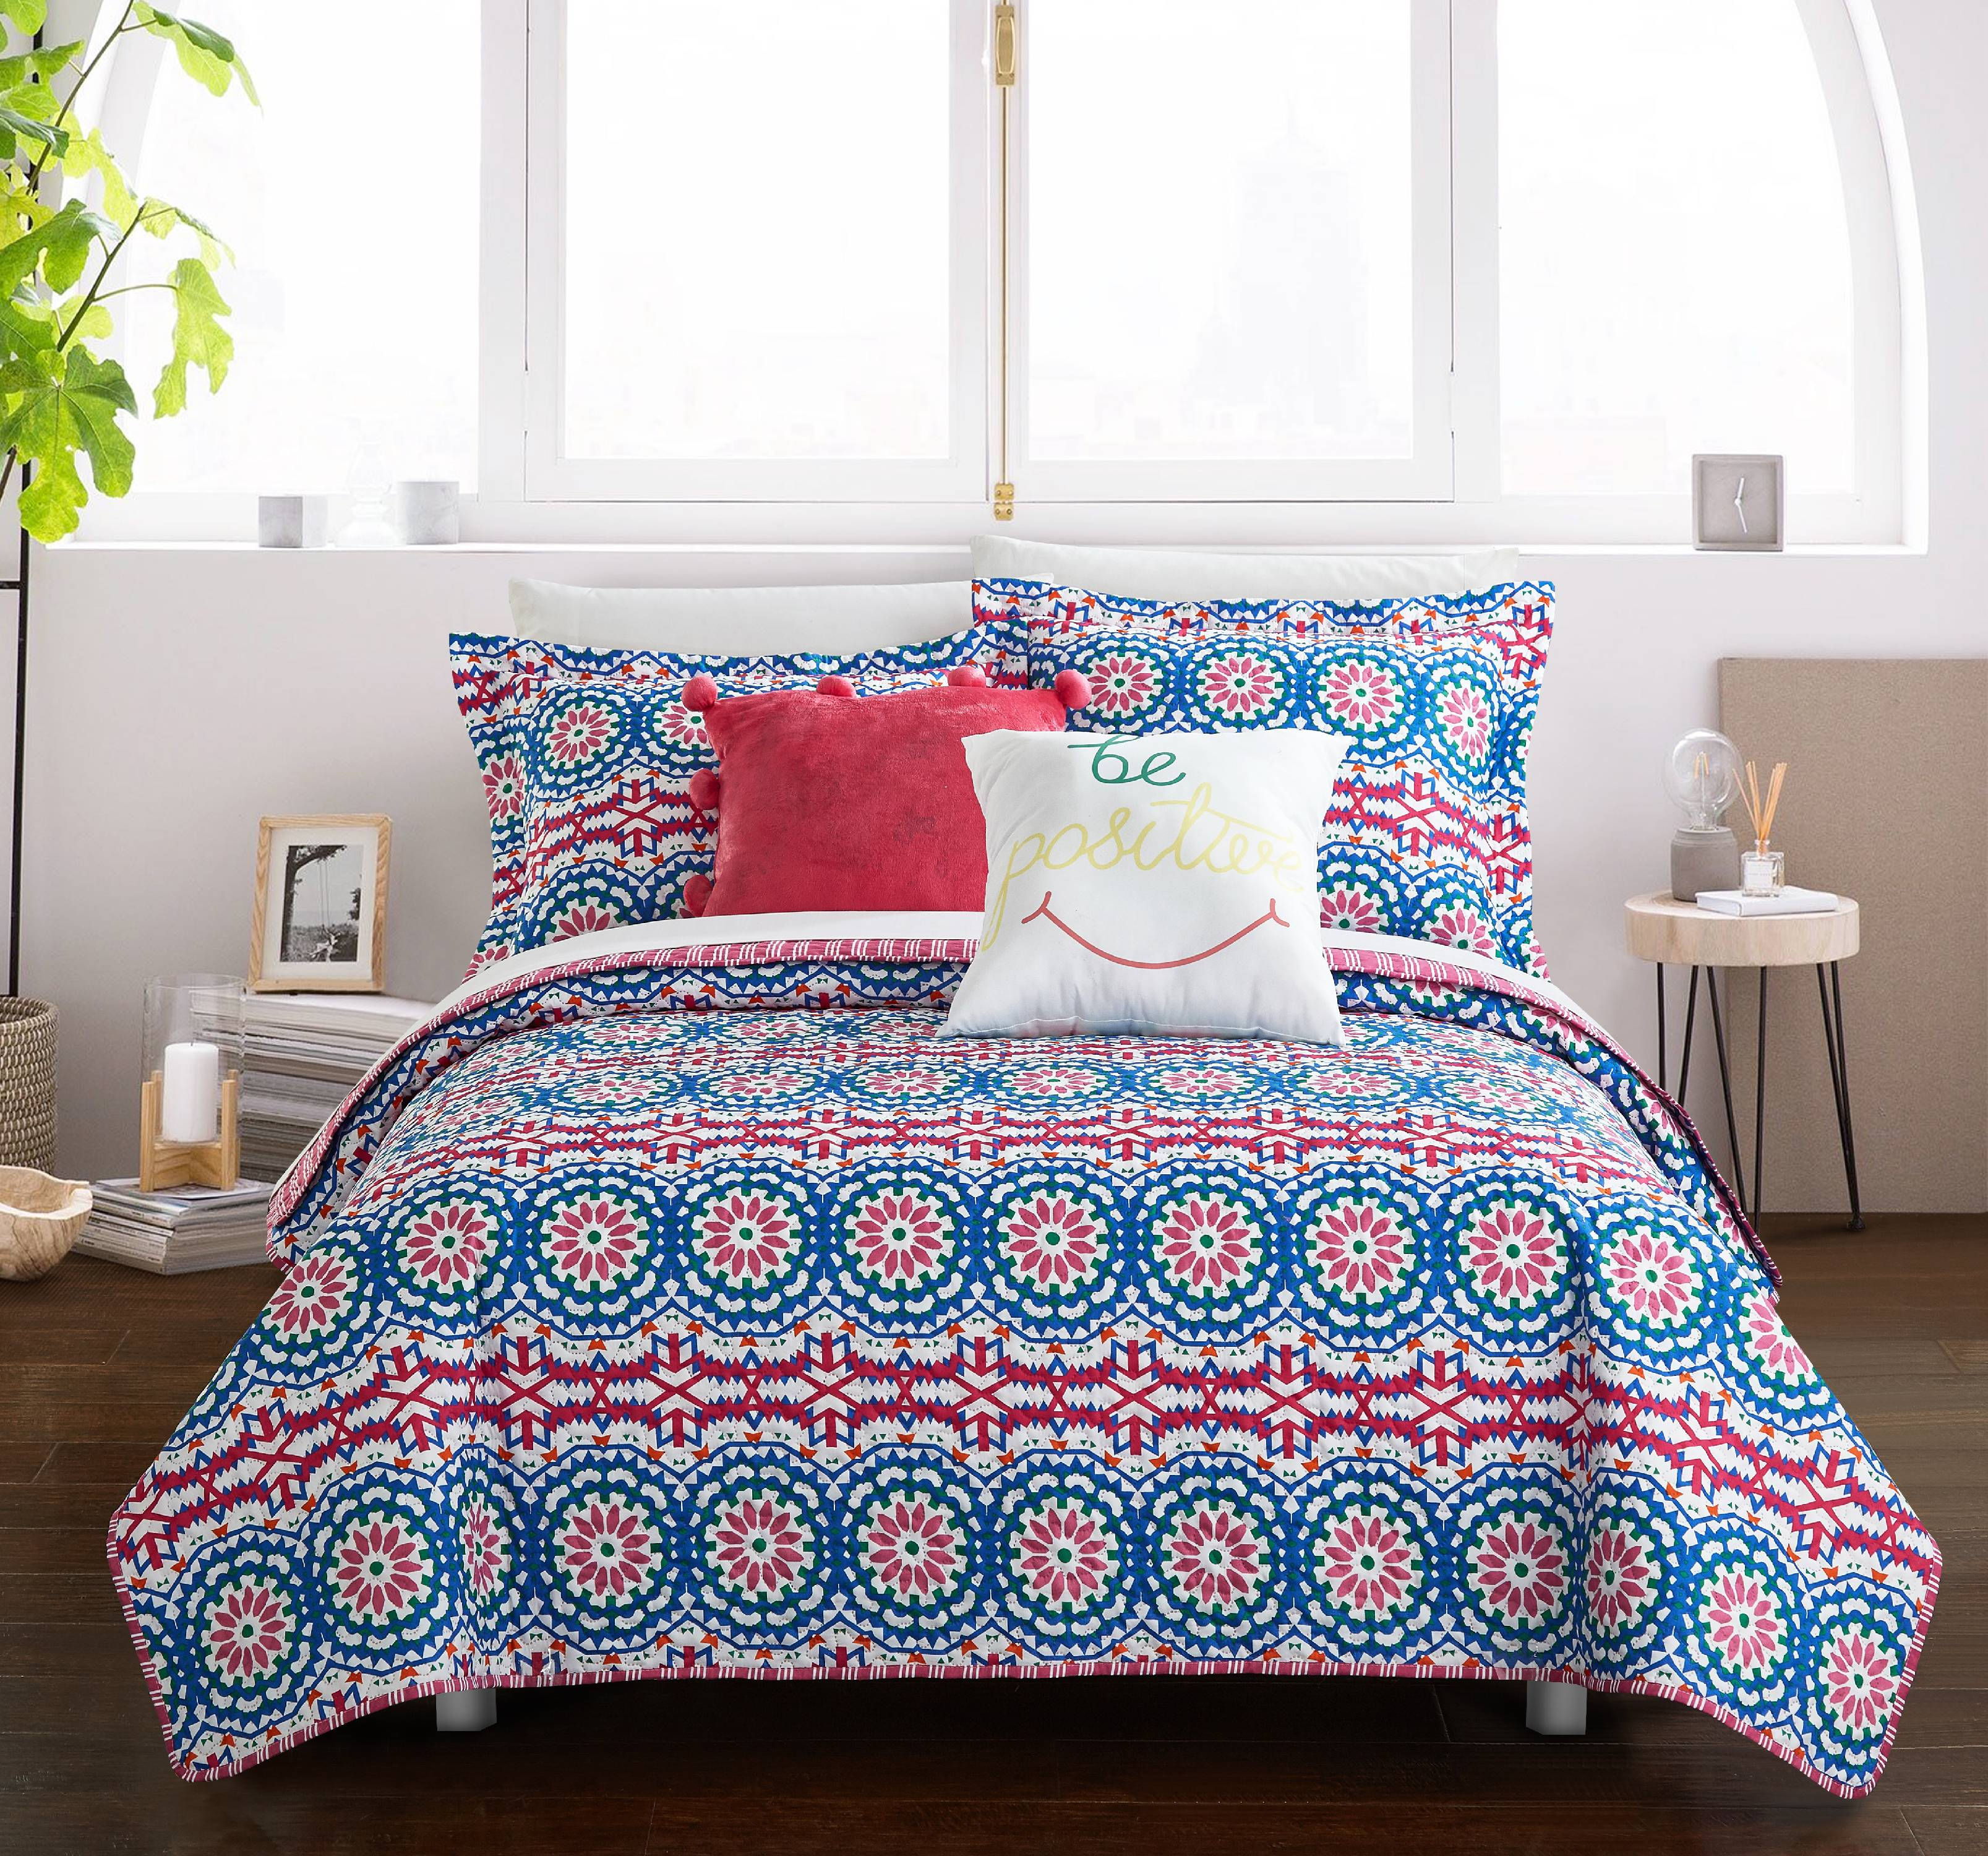 Chic Home Sachio 7 Piece Reversible Bed in a Bag Quilt Cover Set